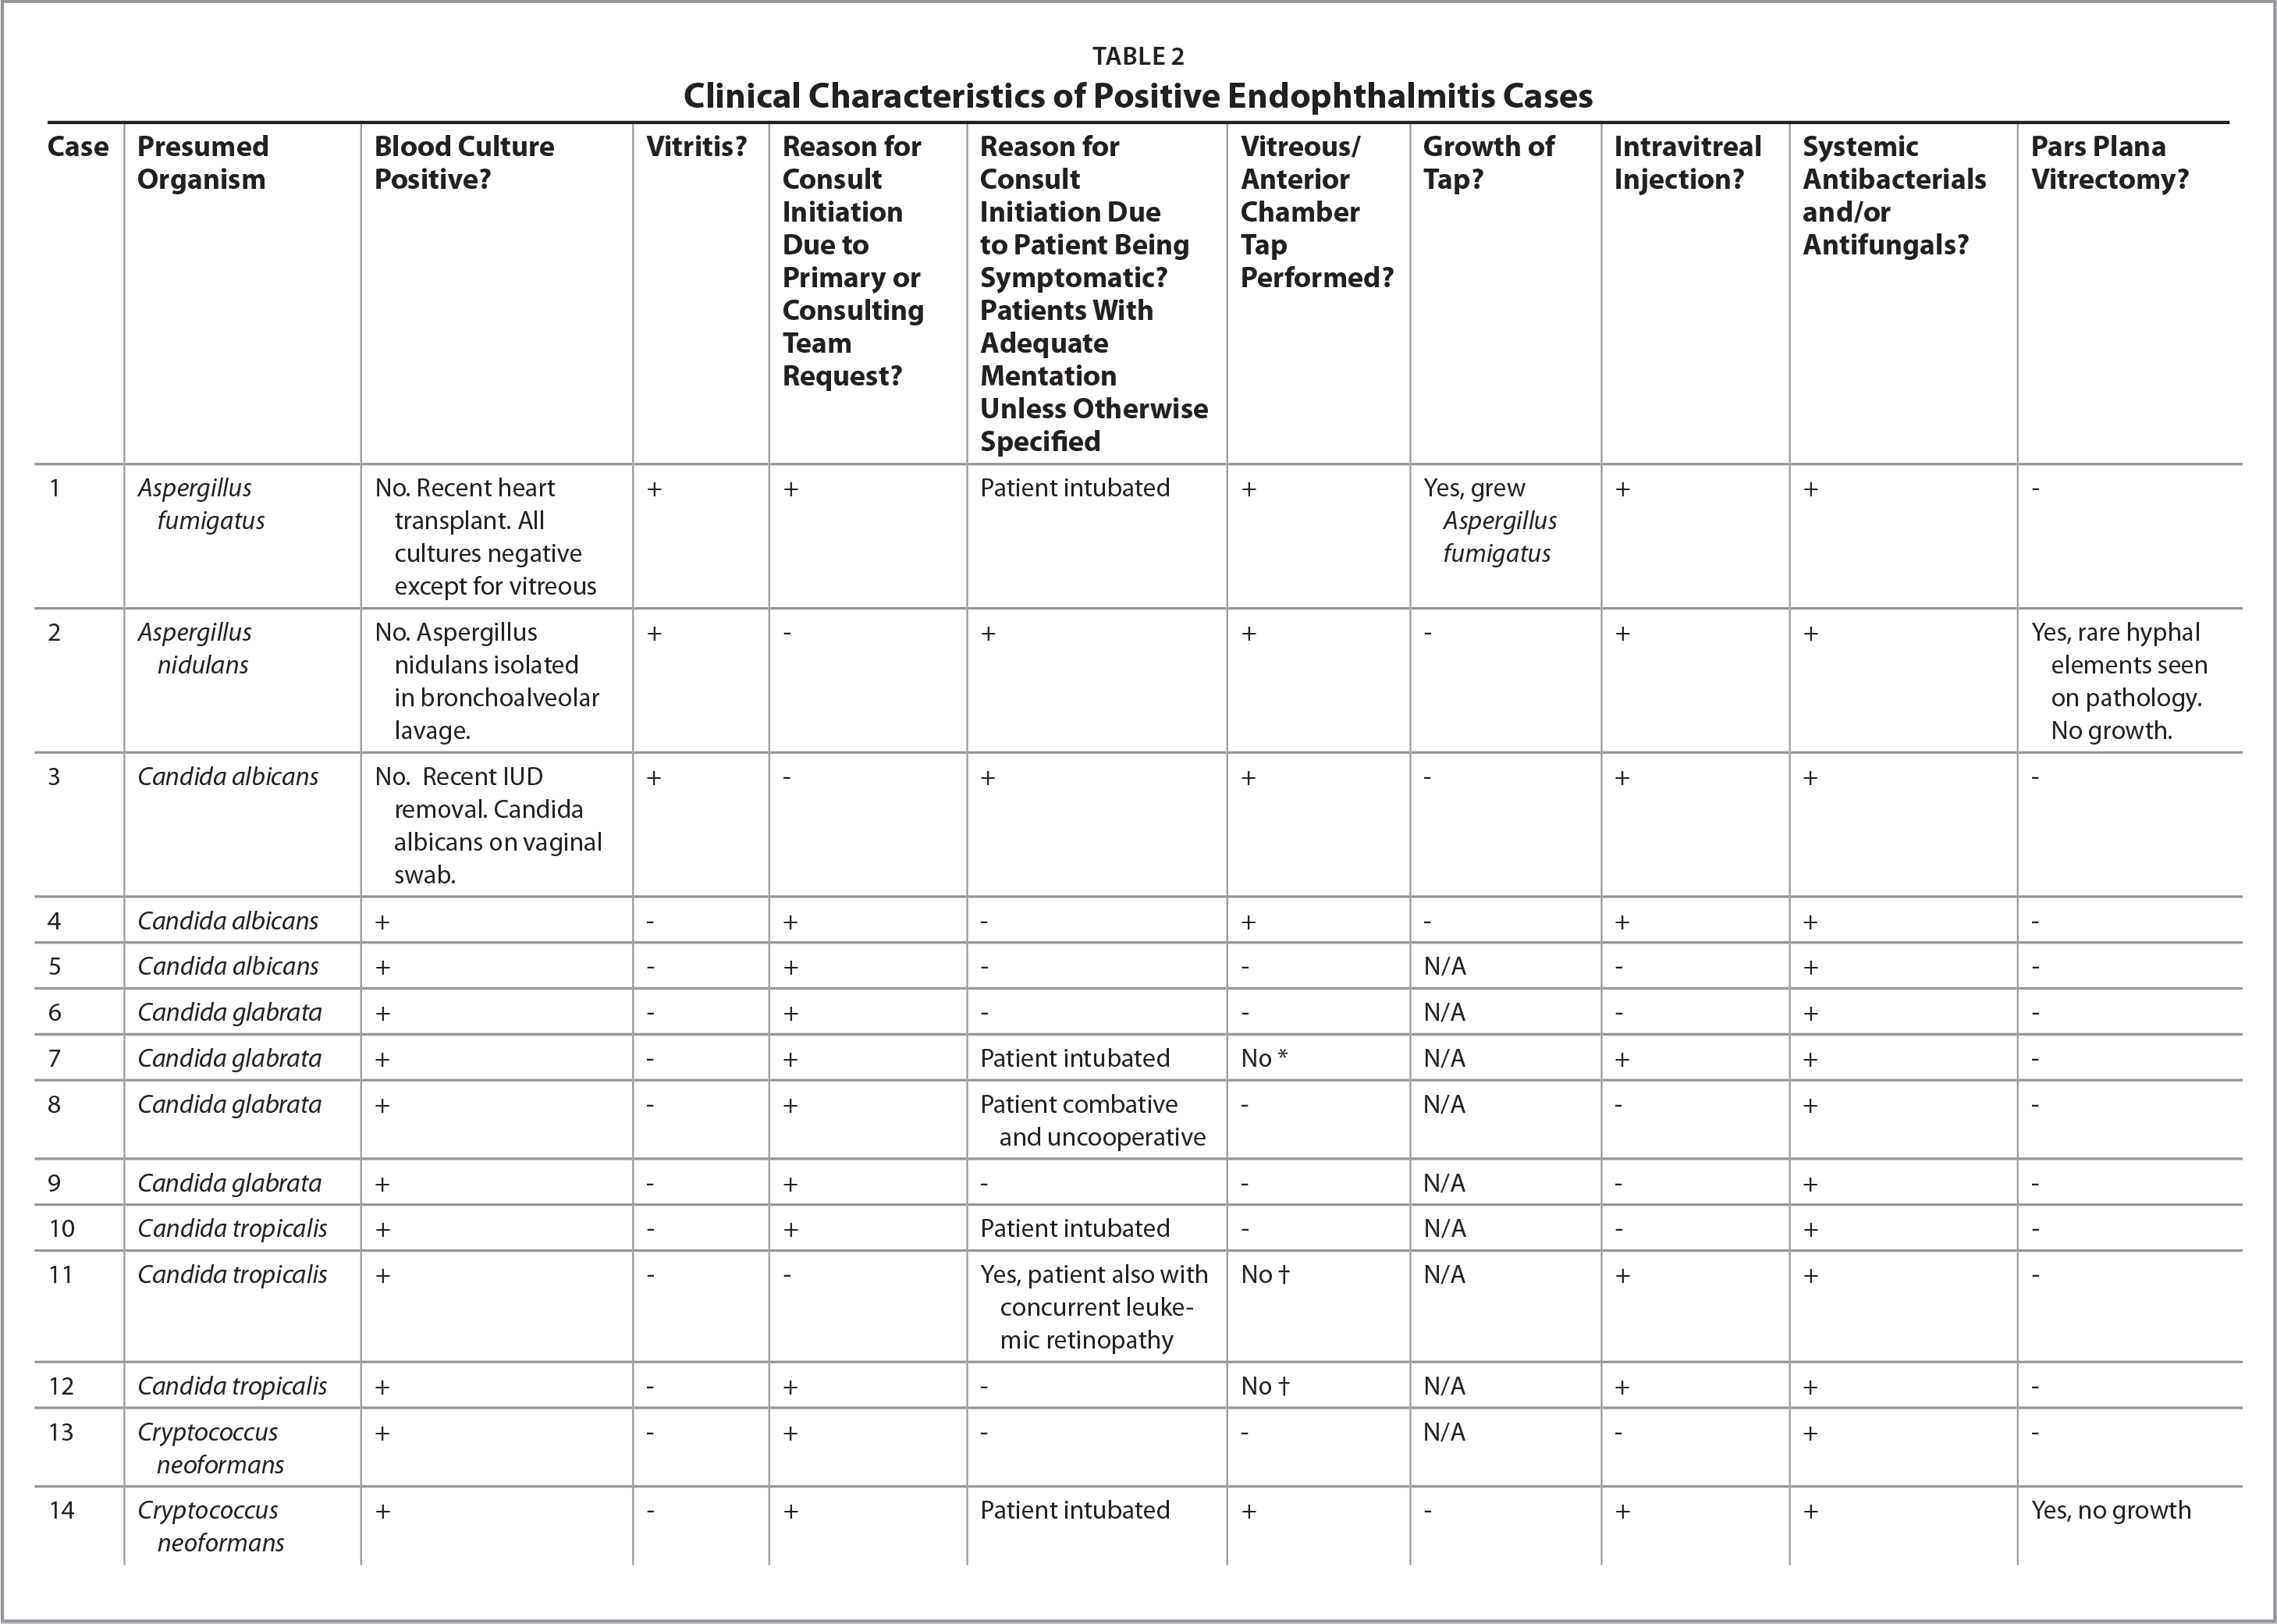 Clinical Characteristics of Positive Endophthalmitis Cases